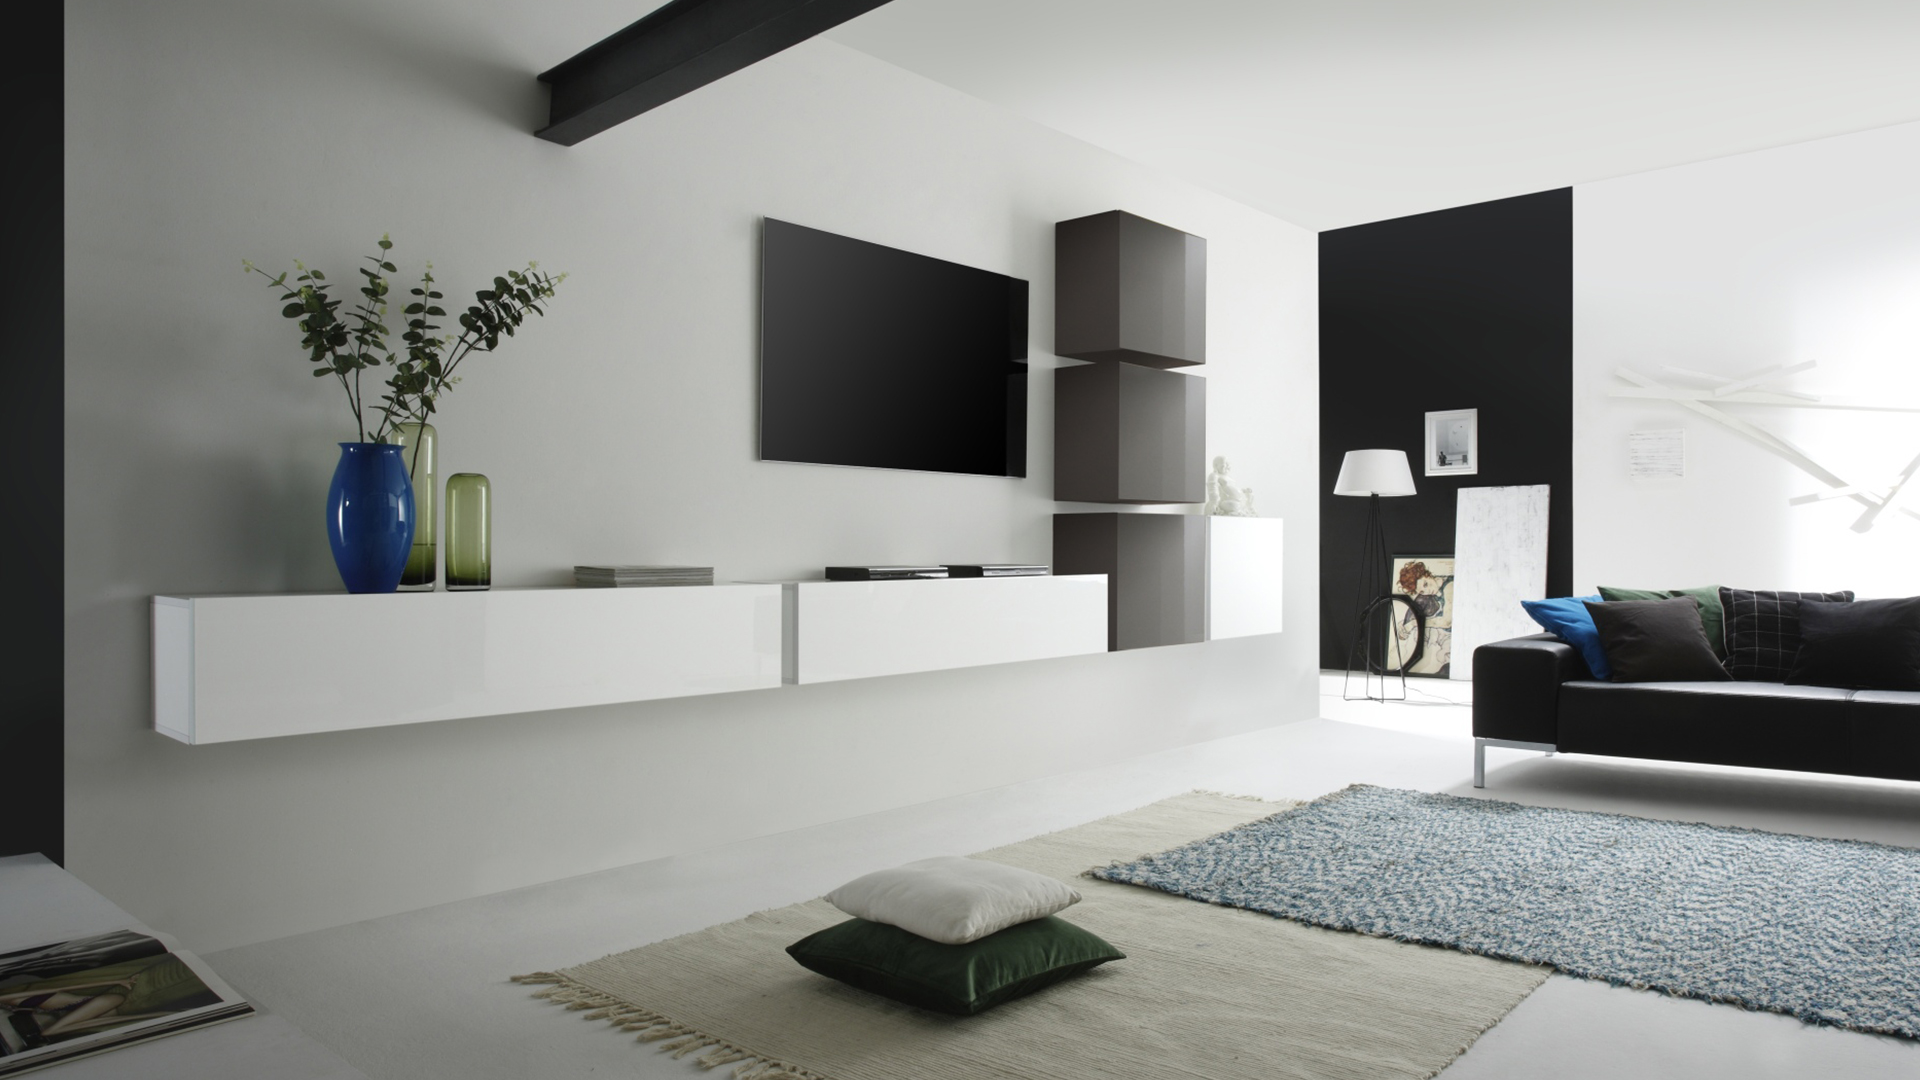 Meuble Tv Suspendu Etagere - Le Blog Mobiliermoss Mobilier Suspendu La Nouvelle Tendance [mjhdah]http://www.beerandrail.com/wp-content/uploads/2018/02/meuble-tv-c-discount-fresh-meuble-tv-mural-television-suspendu-fly-design-cdiscount-tele-ikea-of-meuble-tv-c-discount.jpg